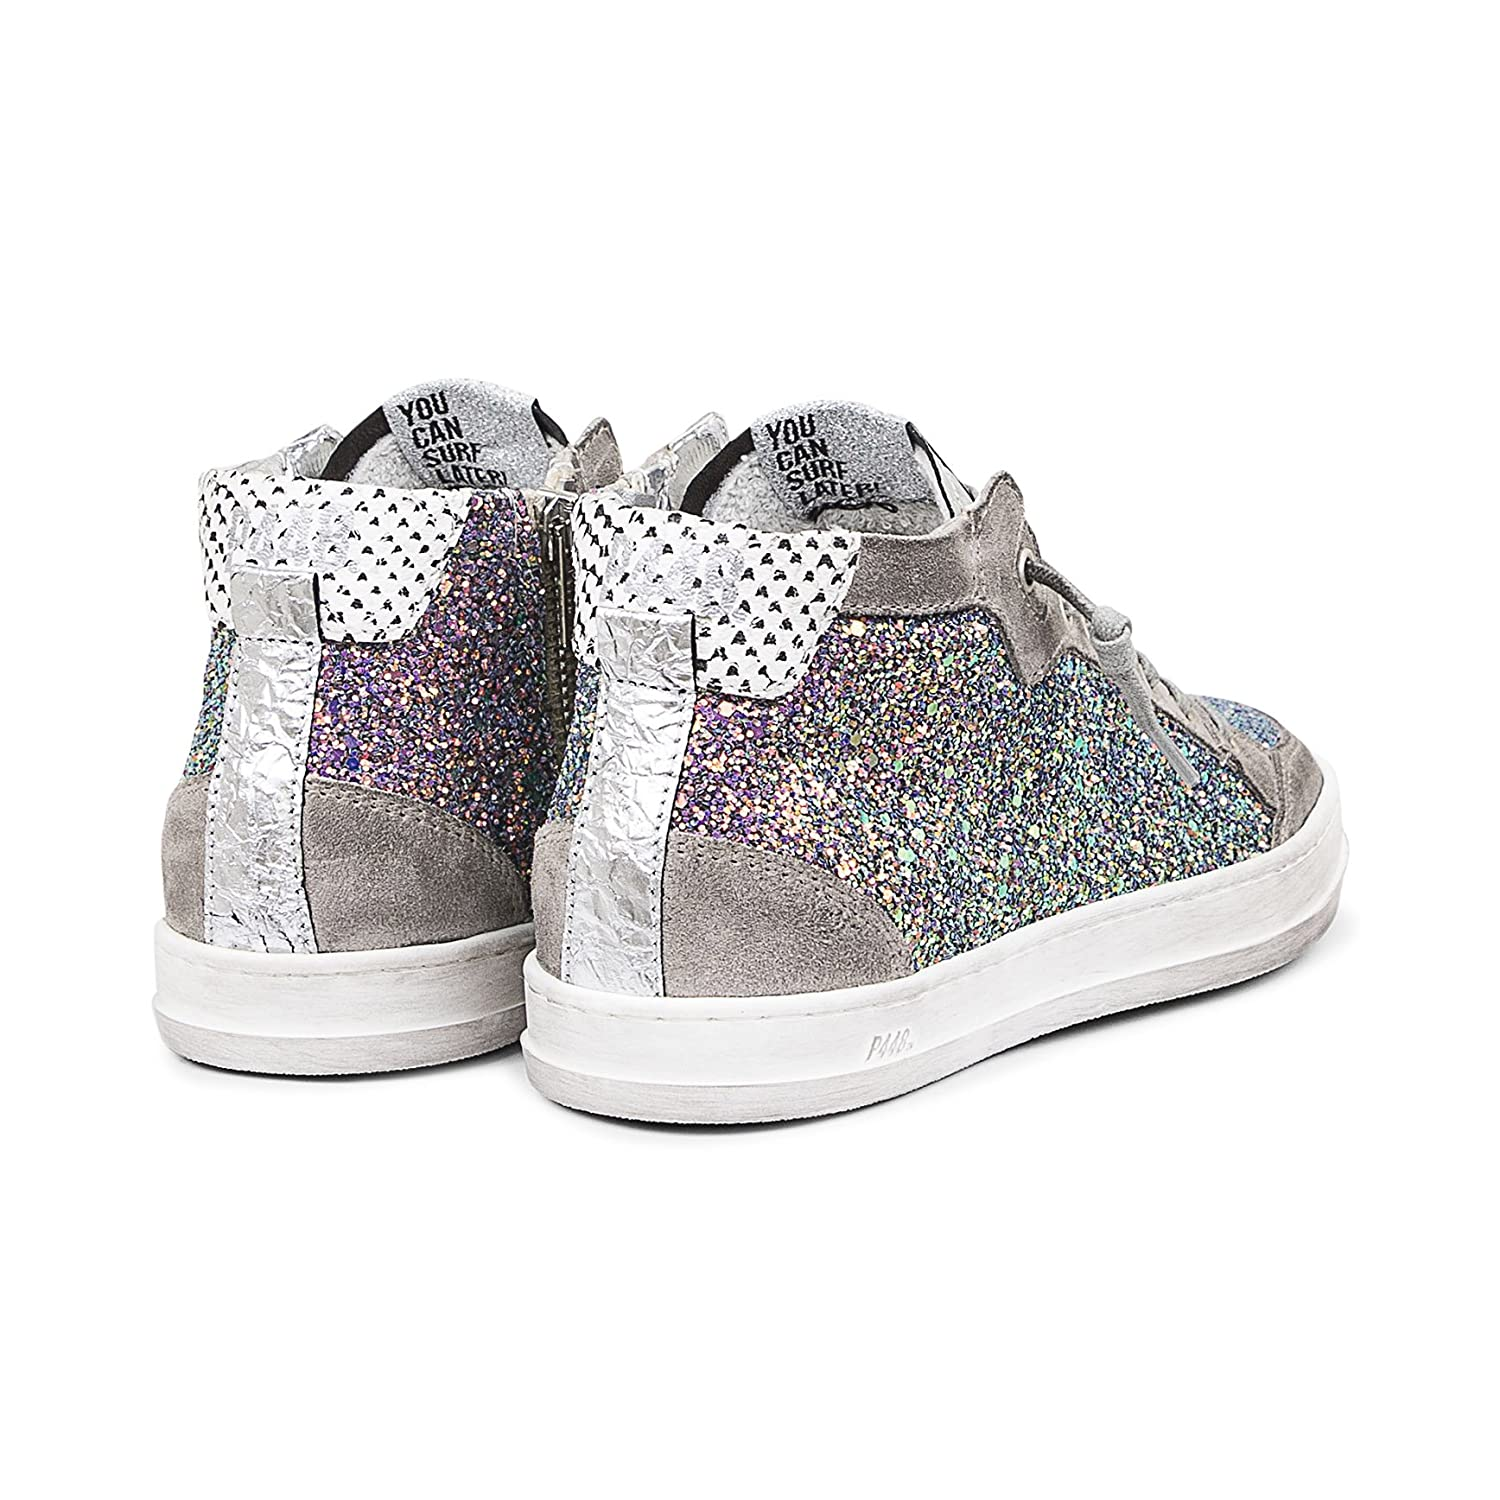 P448 Women's Love Italian Leather Multicolor Glitter / Sneaker B0798ZTM9M EU 40 / Glitter US 8.5-9|Multicolor Glitter 8fbb7a